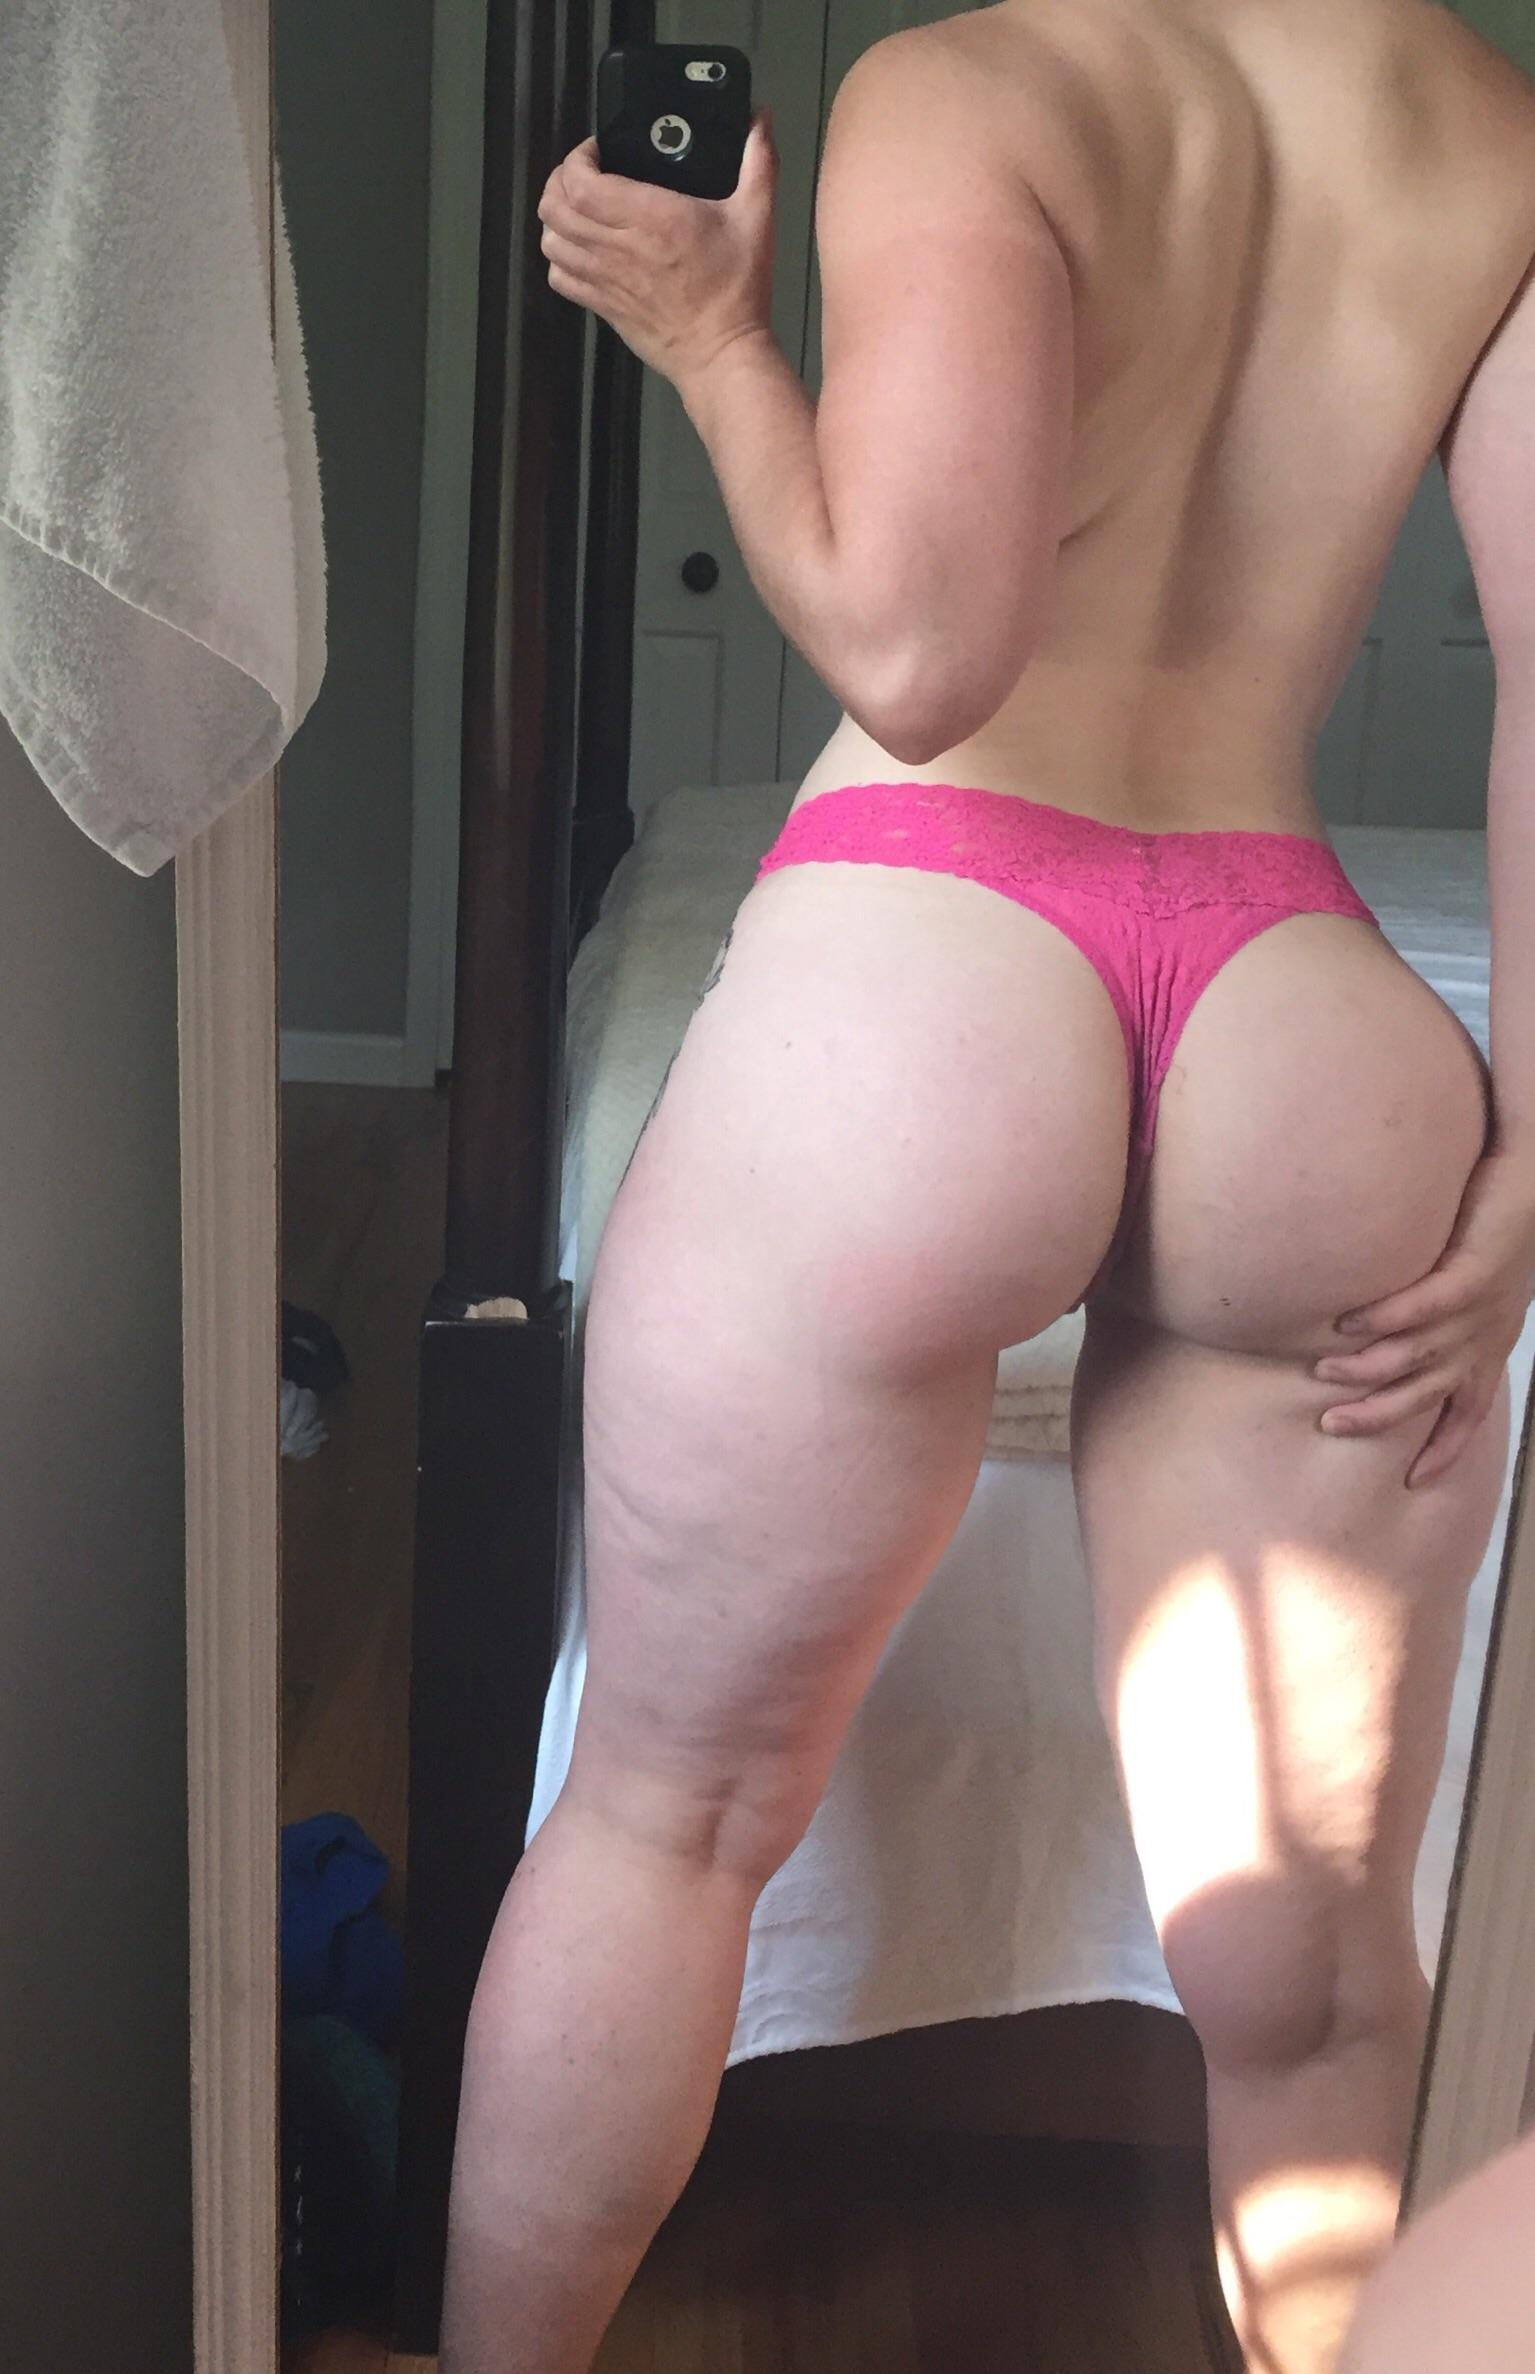 This is probably my favorite thong